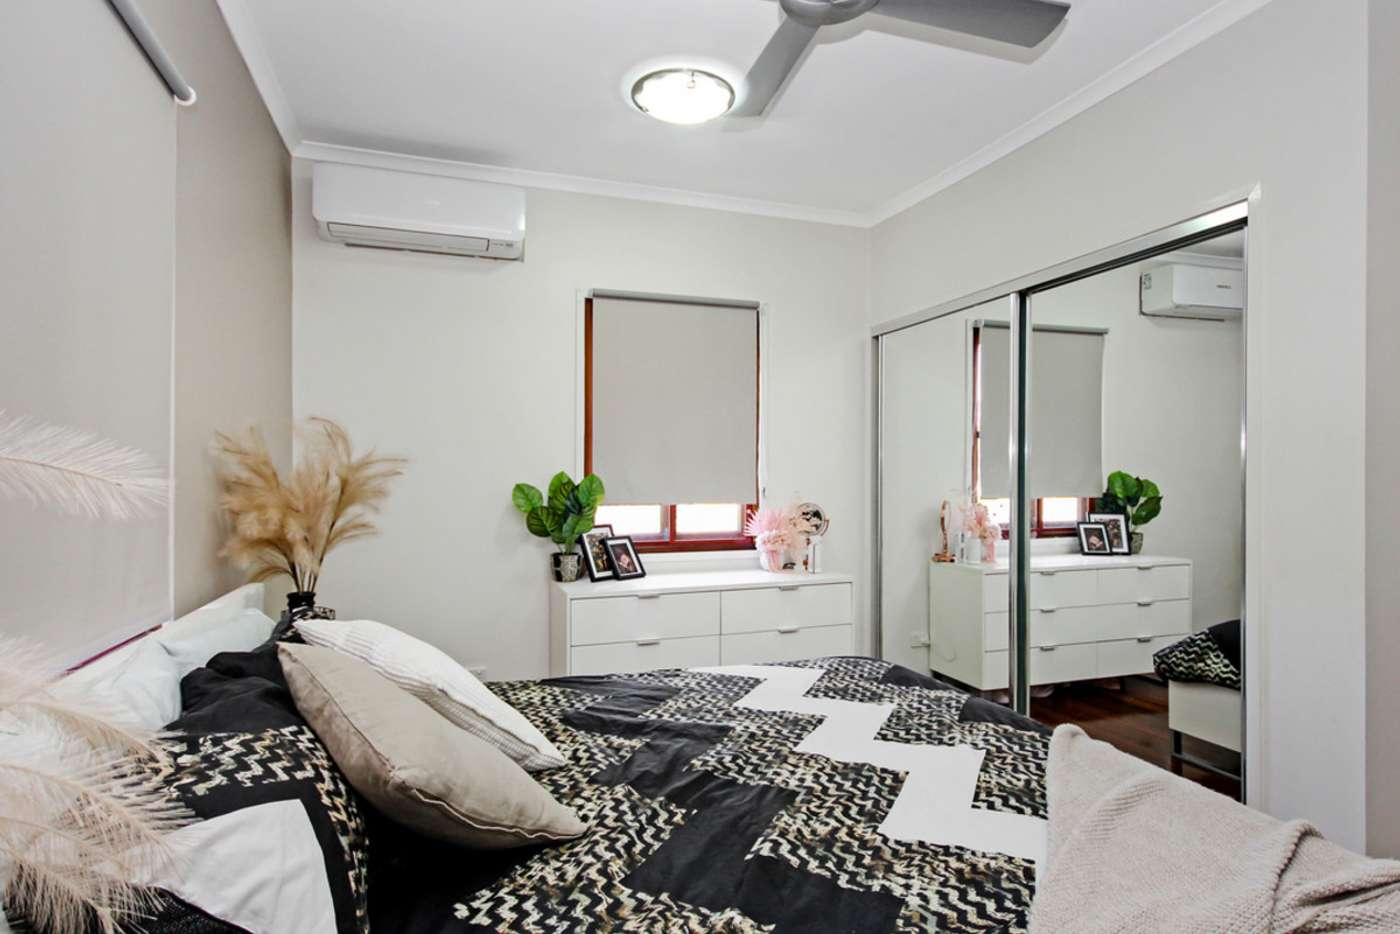 Sixth view of Homely house listing, 41 Haig Street, Brassall QLD 4305